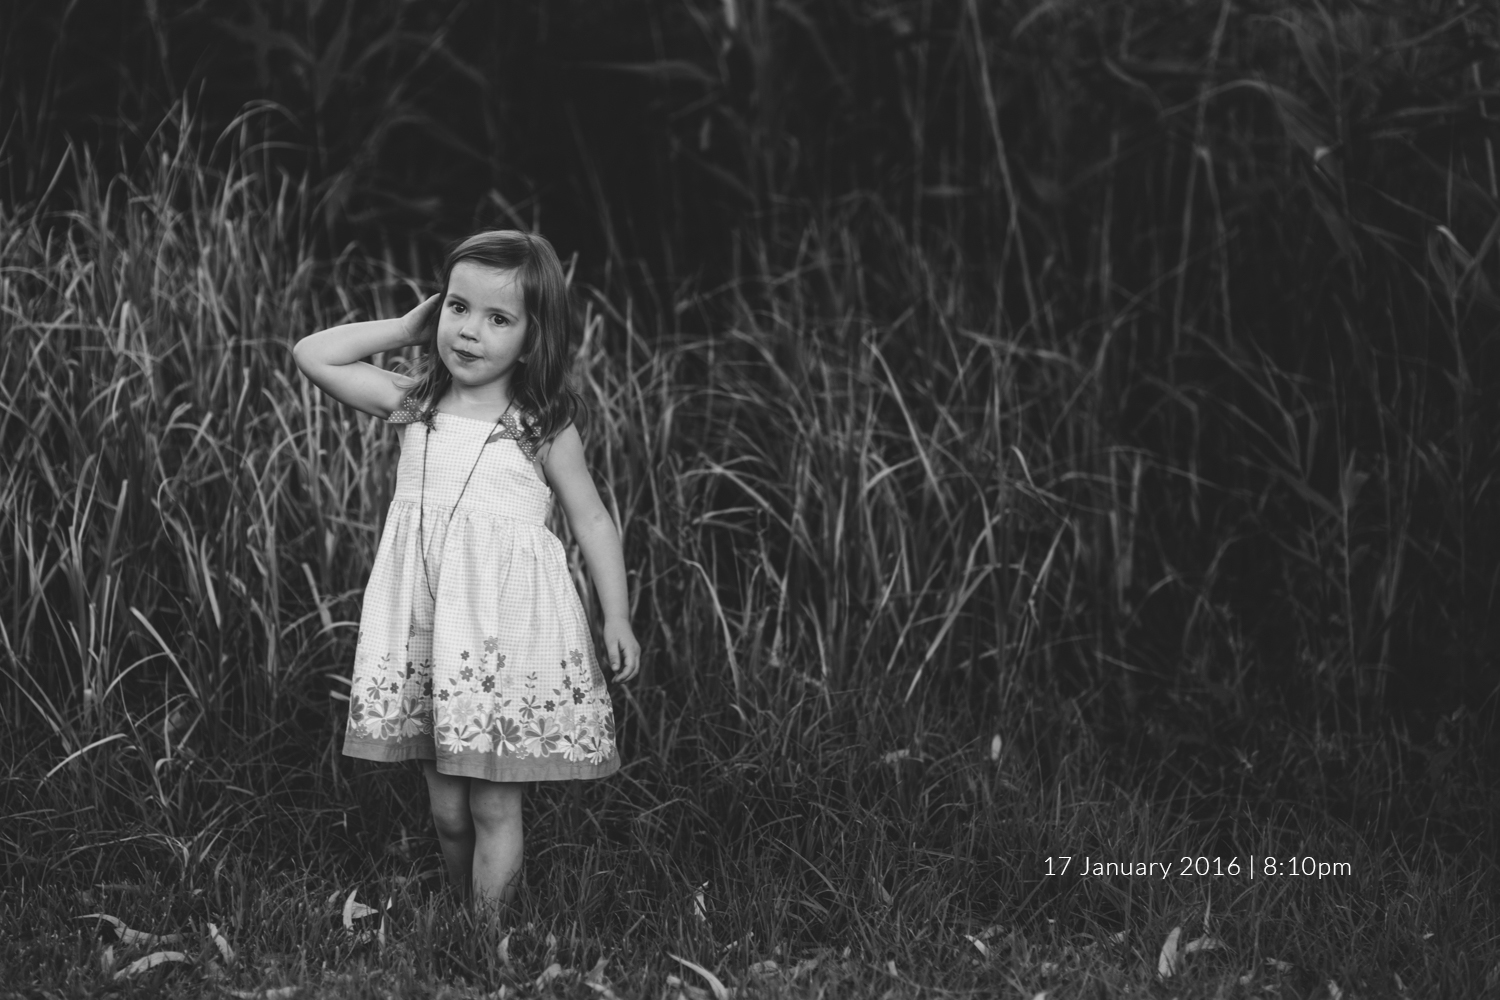 family-photography-photo-a-day-project-day-17.jpg